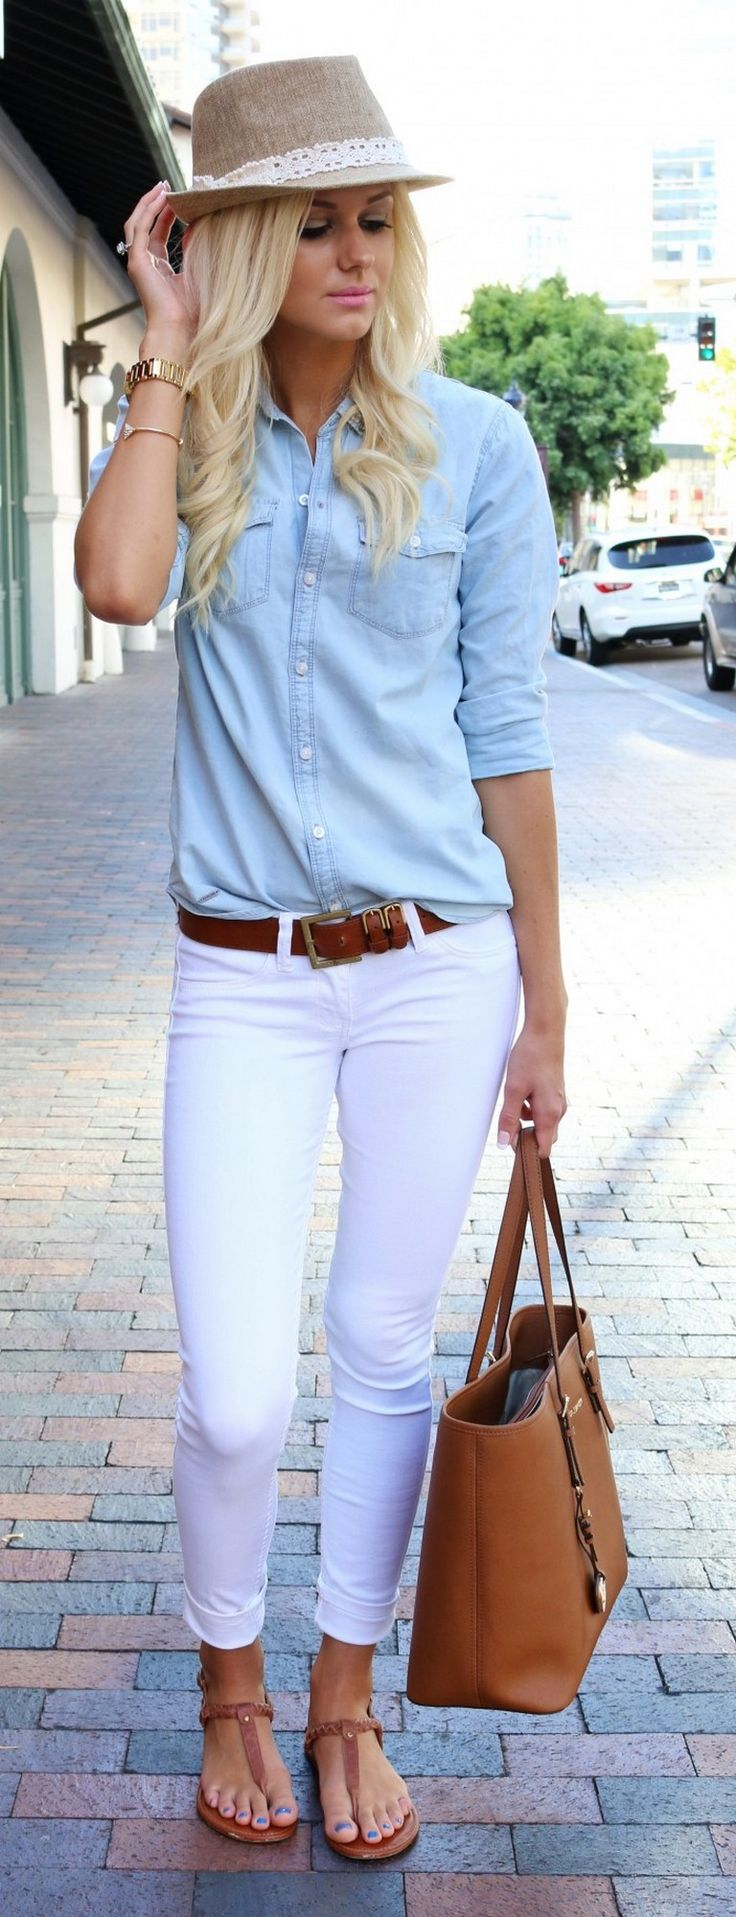 43 best women's style images on pinterest | athletic, bodies and